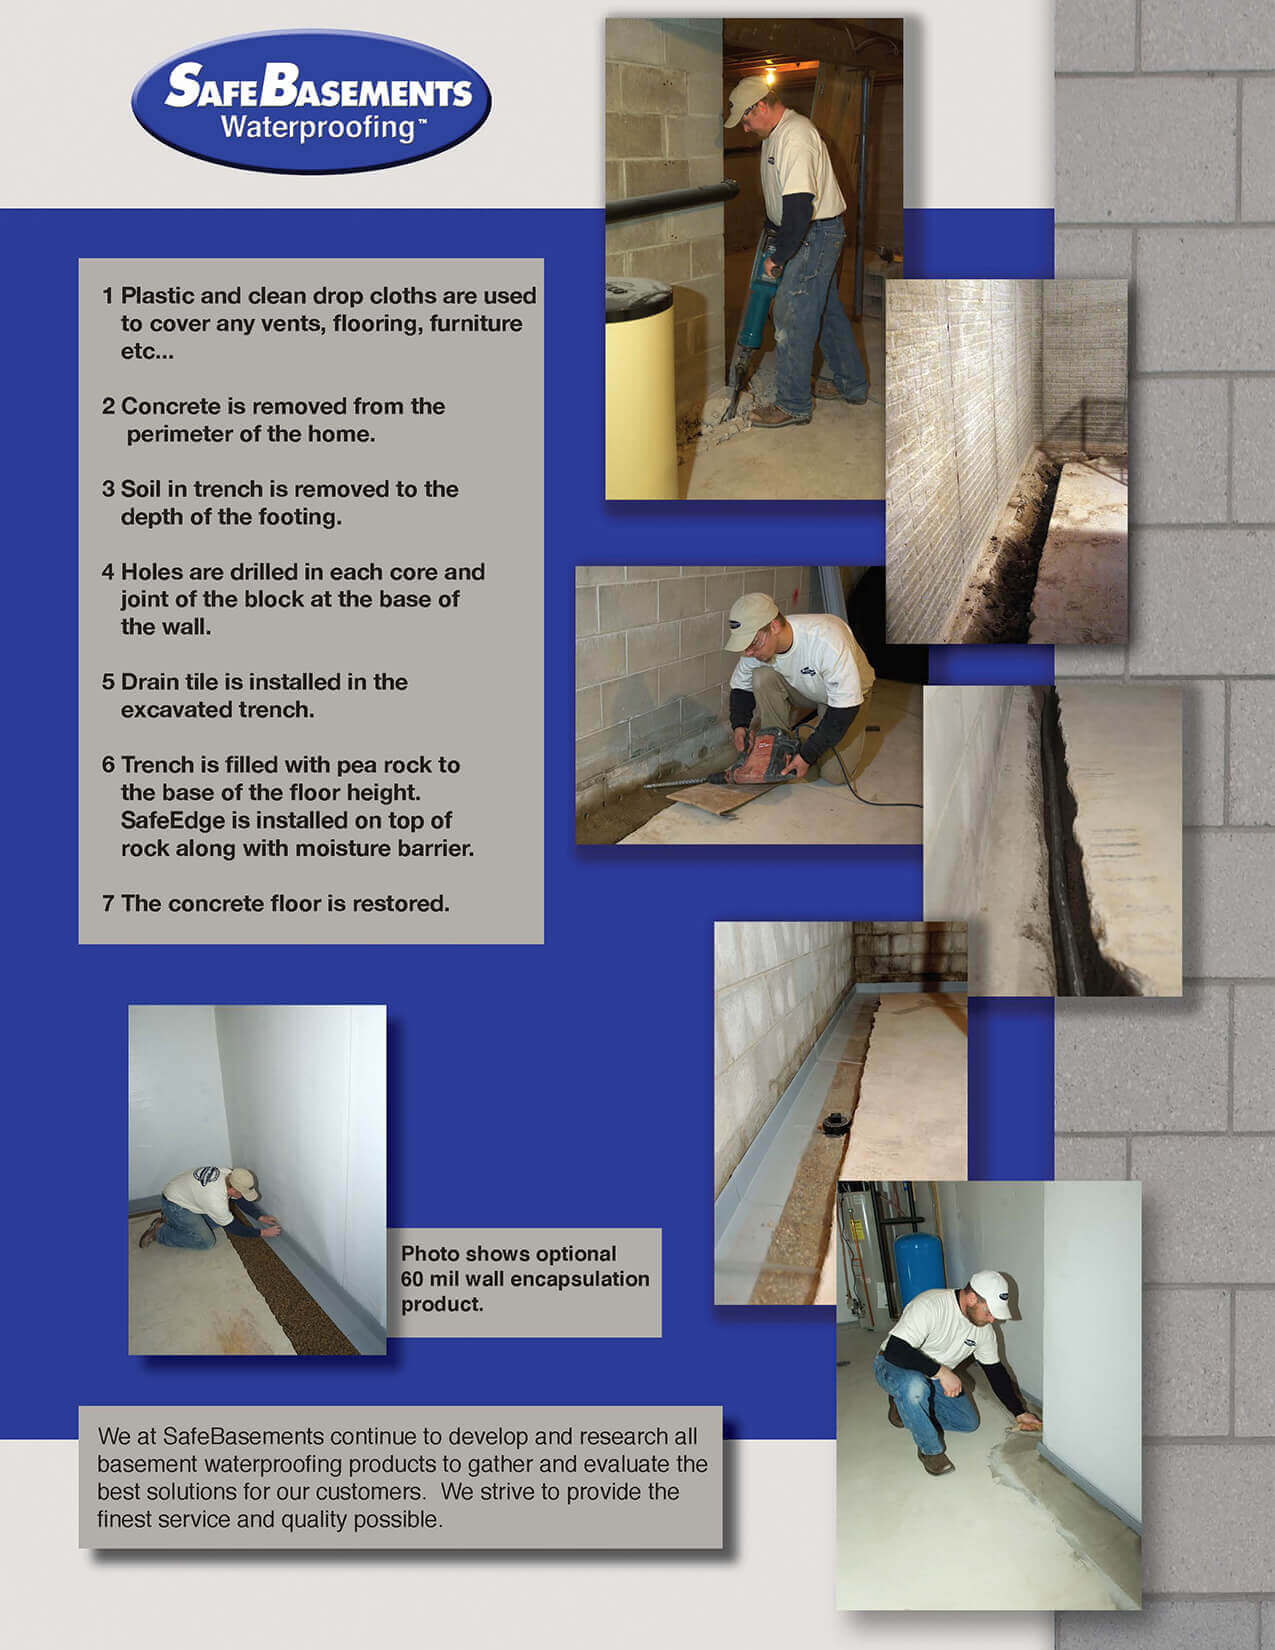 SafeEdge Waterproofing System Basement Drainage SafeBasements - Basement waterproofing products